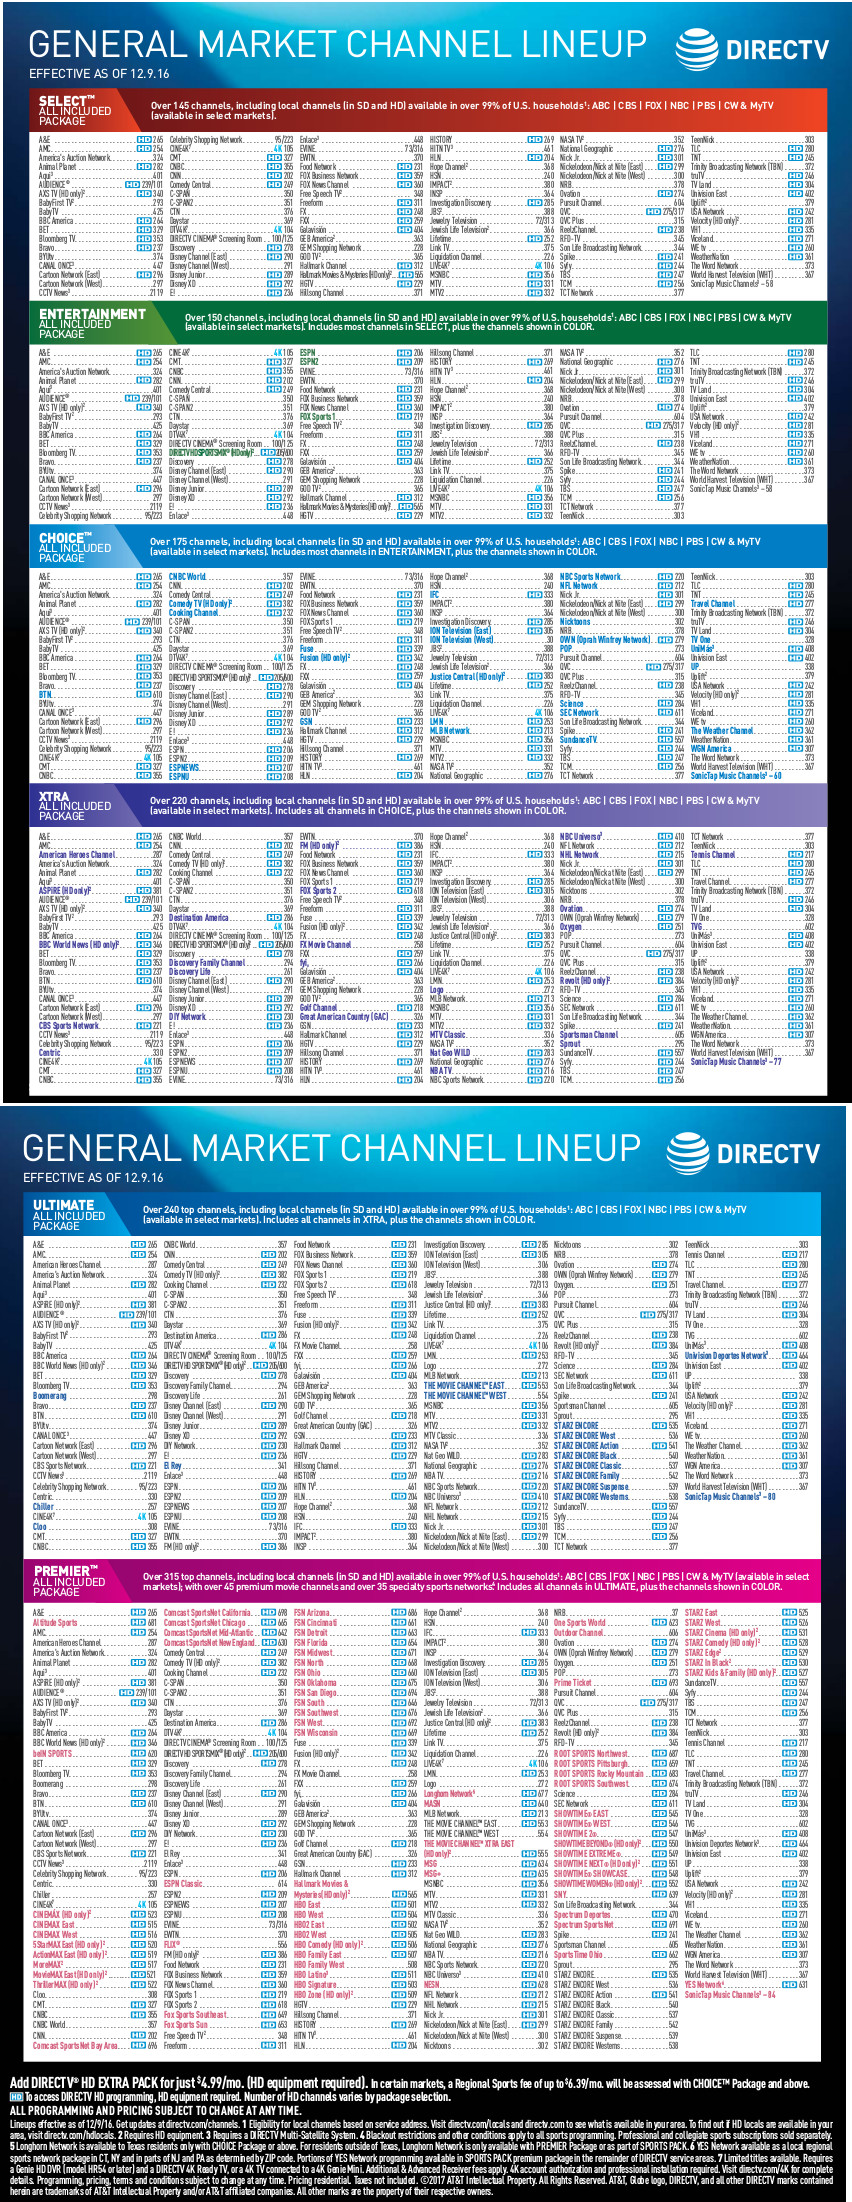 Sheffield IA 50475 DirecTV Pricing Specials